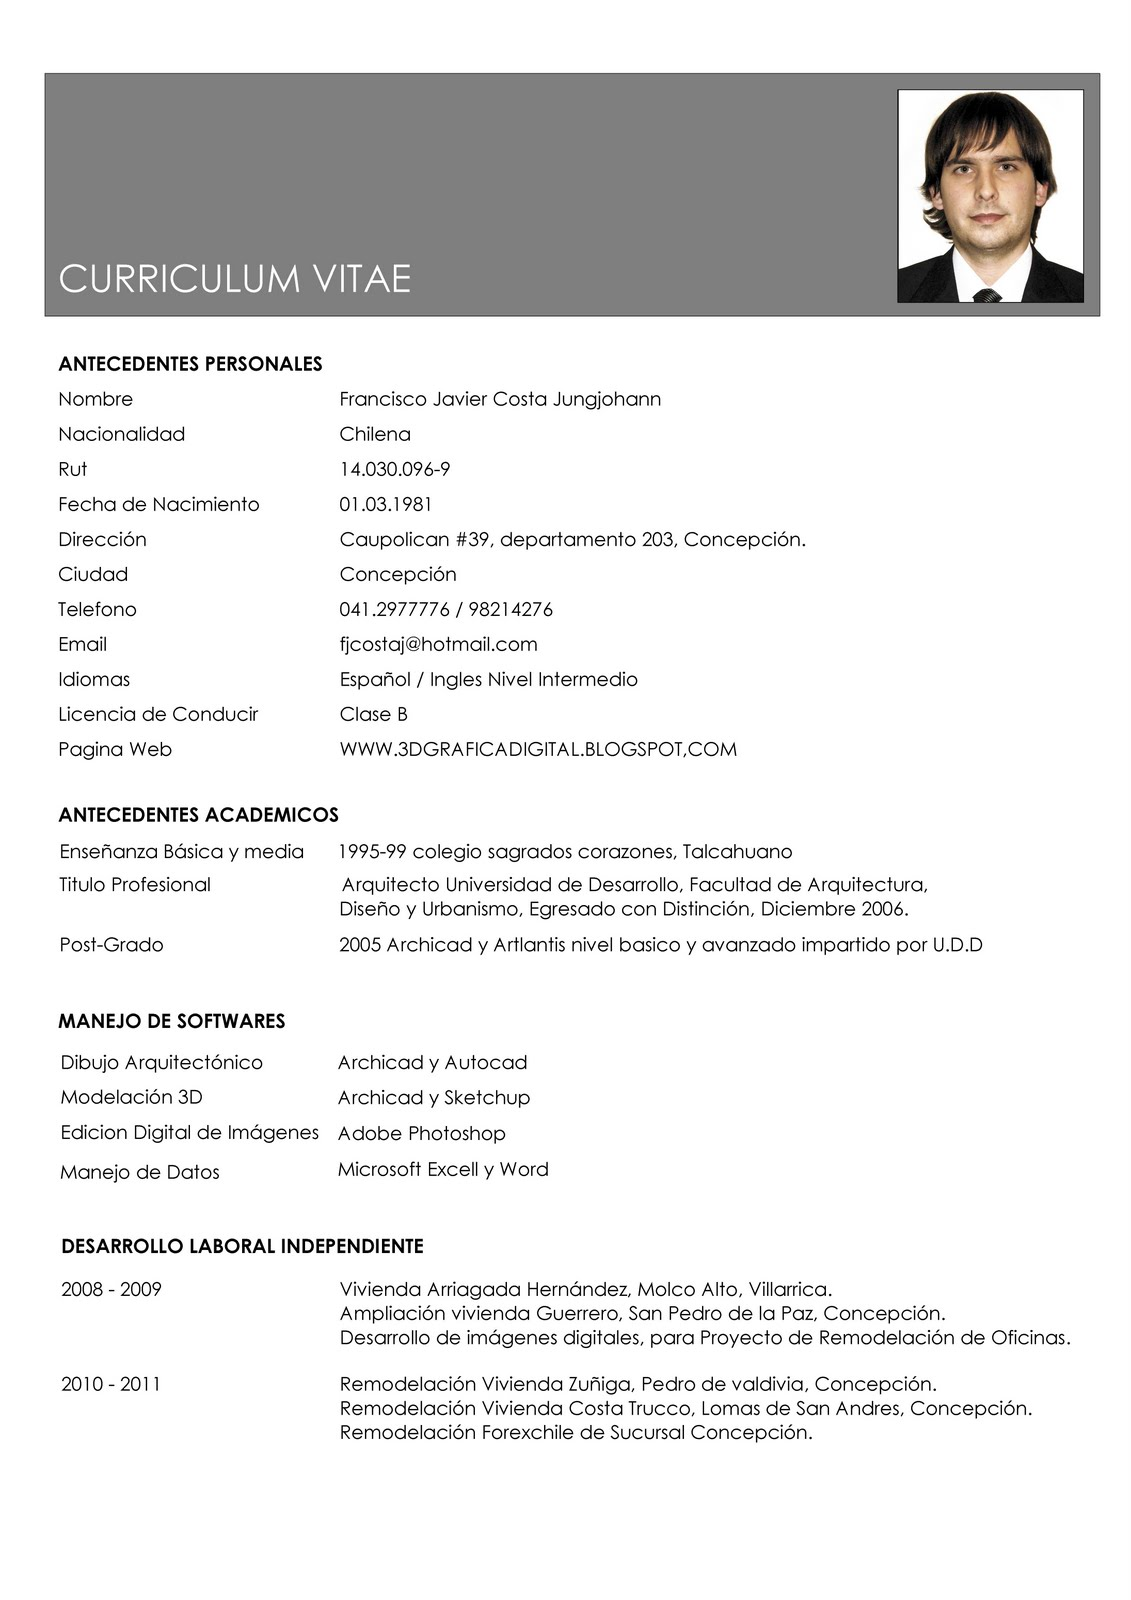 Modelosyejemplodeuncurriculumvitae  El Parana Diario. Examples Excuse Letter Absent School. Resume Of Head Teacher. Resume Format Zip. Curriculum Vitae Gratis En Pdf. Cover Letter Marketing Communications Director. Curriculum Vitae Download De Completat. Como Realizar Curriculum Vitae 2018. Job Resume Yahoo Answers